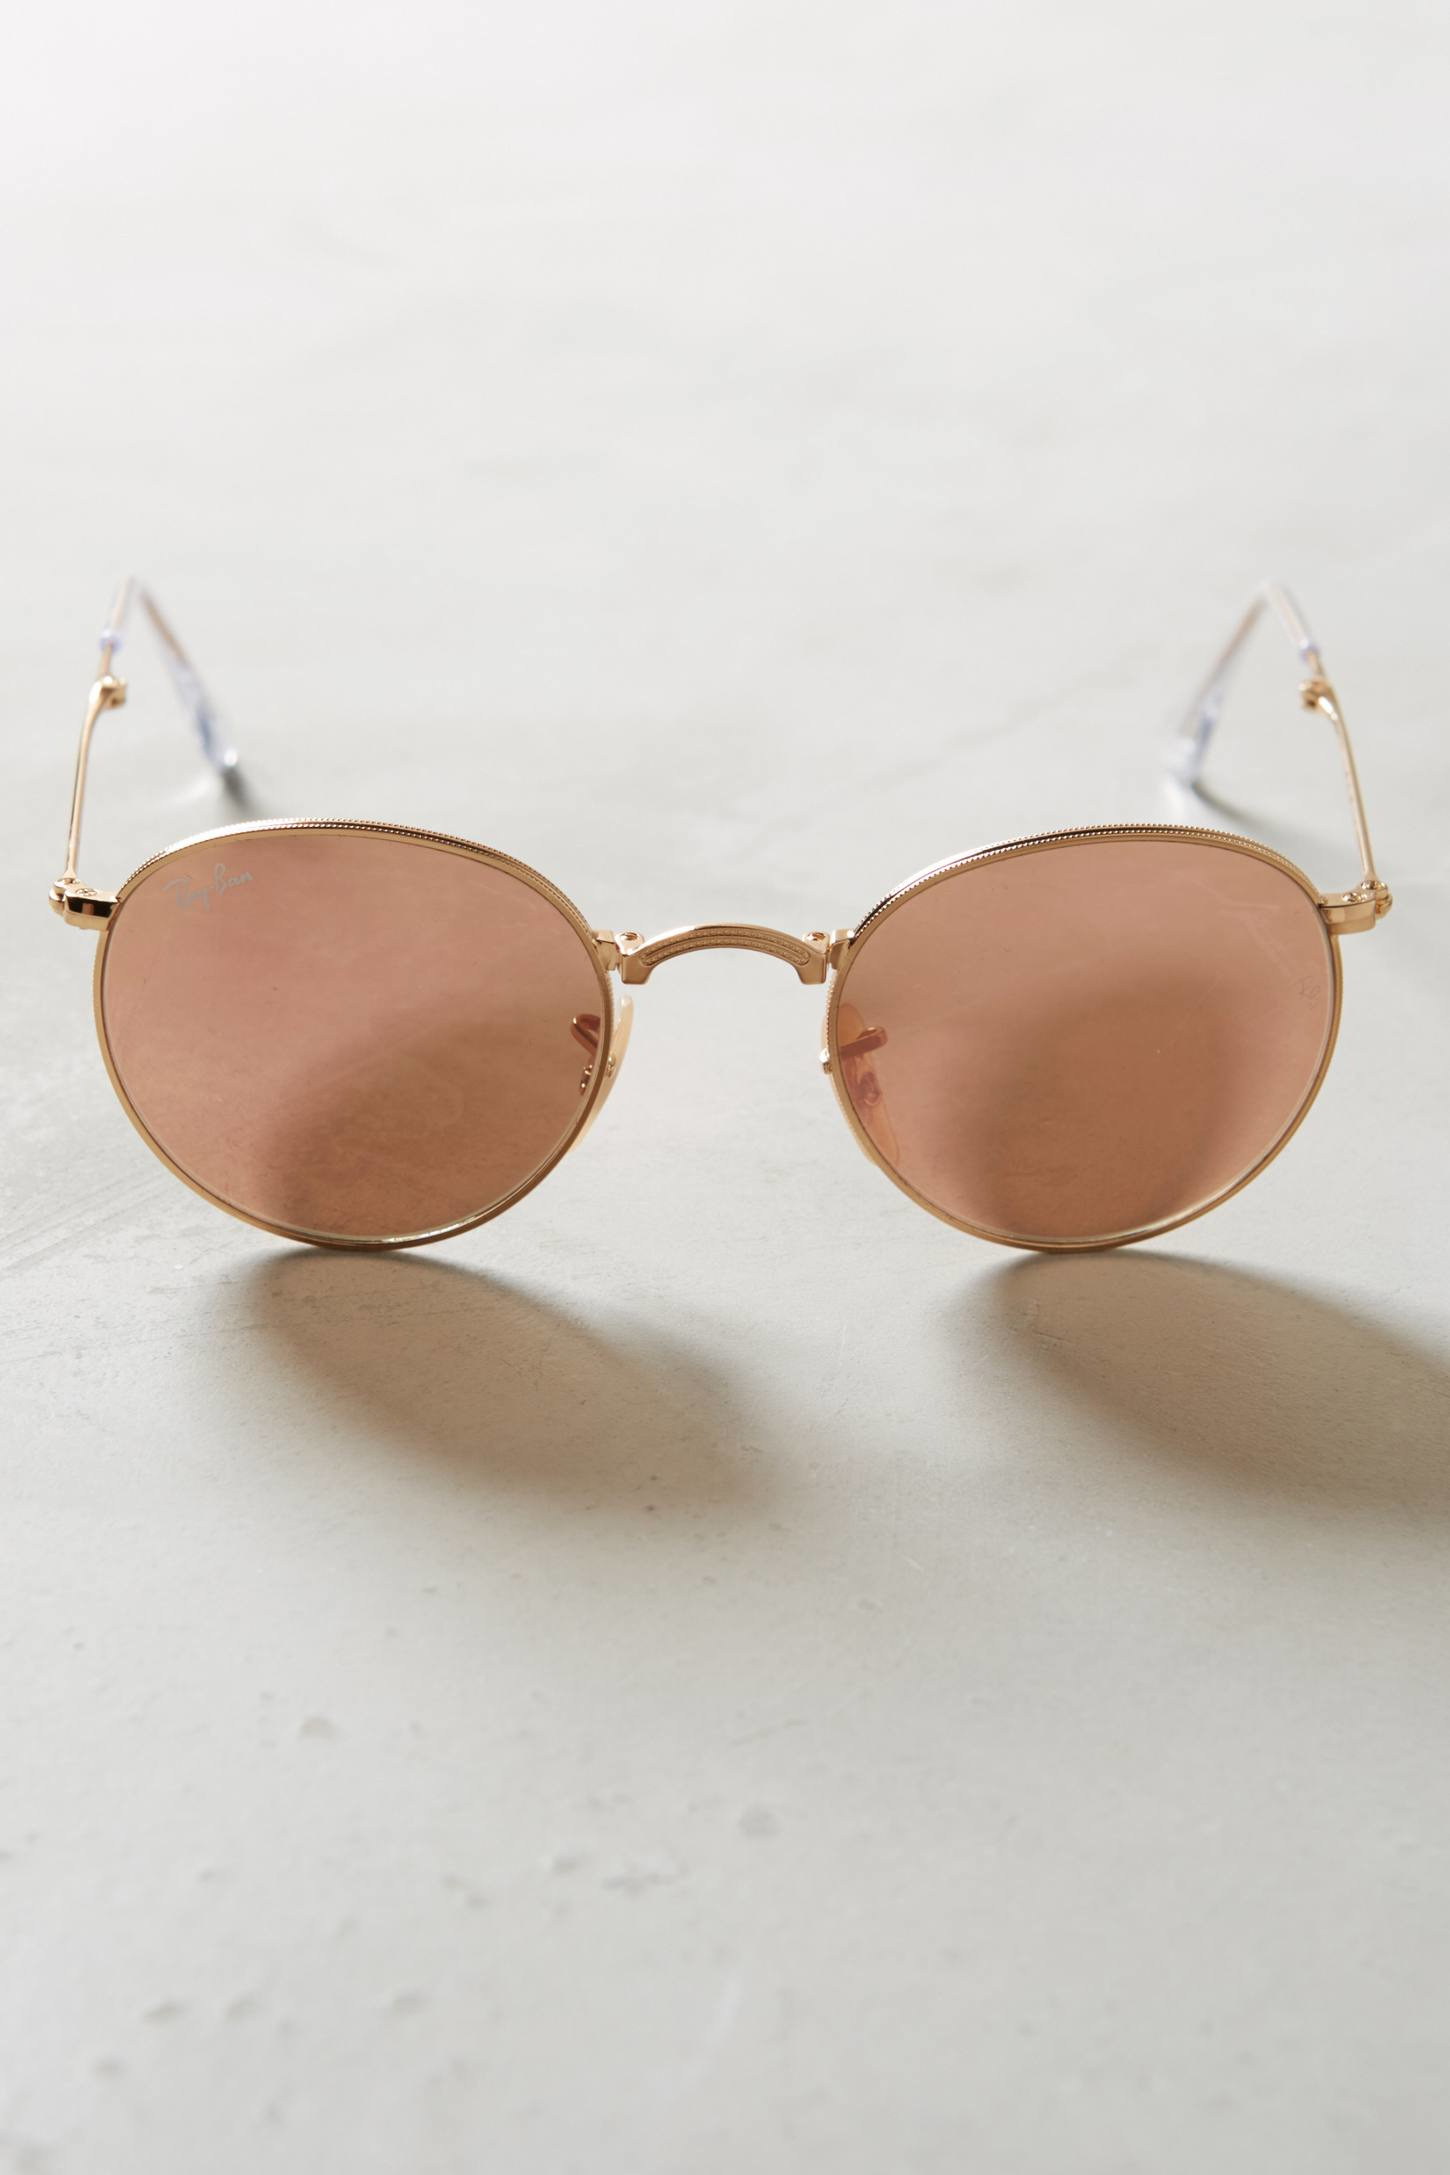 Ray-ban Round Folding Sunglasses in Pink